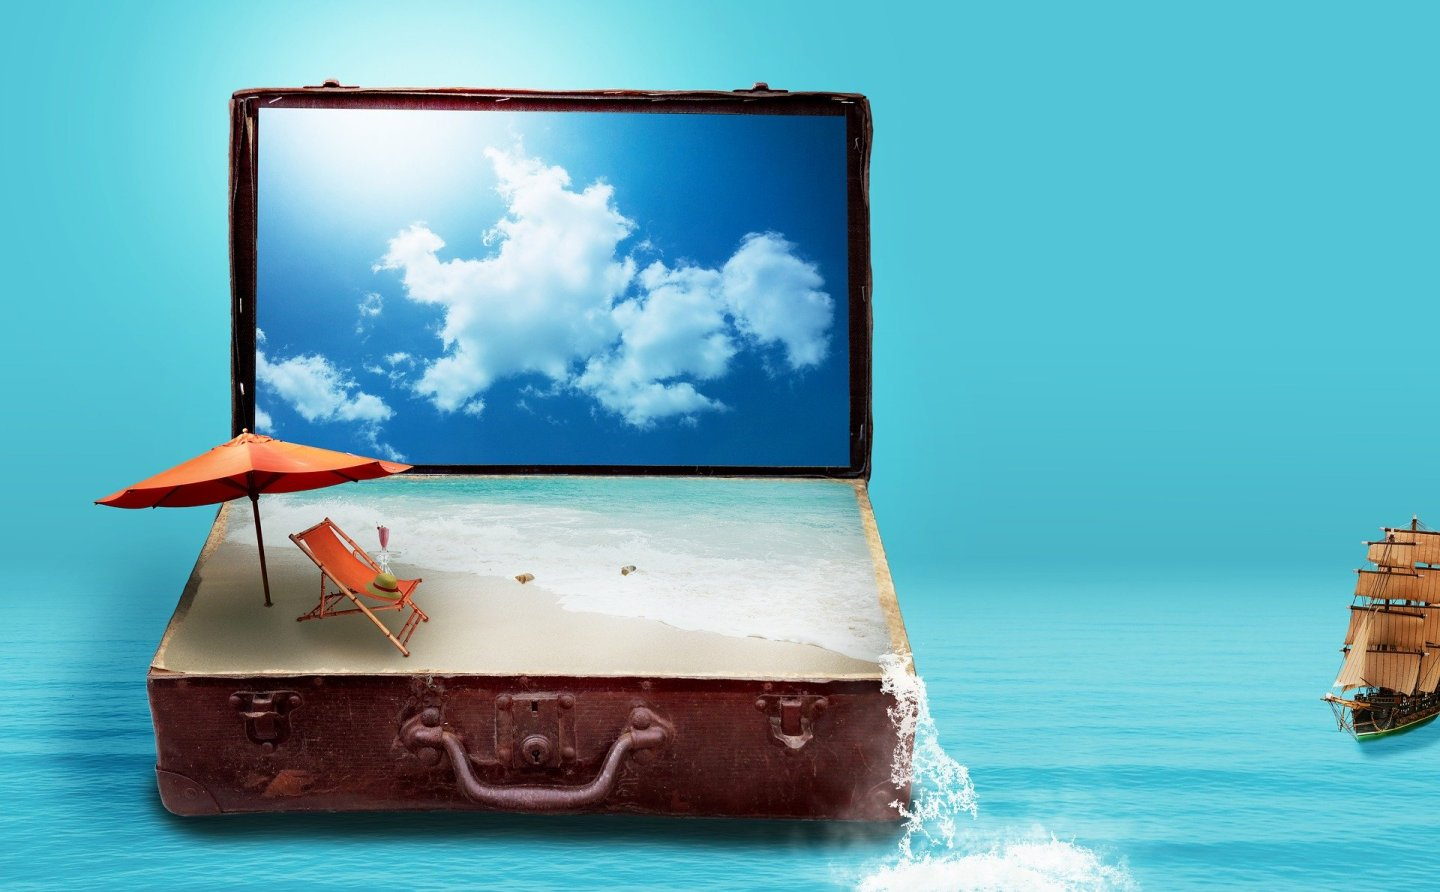 A digital image of a suitcase on water, with a tiny boat to the right. The suitcase has opened up as though it's a laptop, with a blue sky on the screen and sand with a deckchair where the keyboard should be.